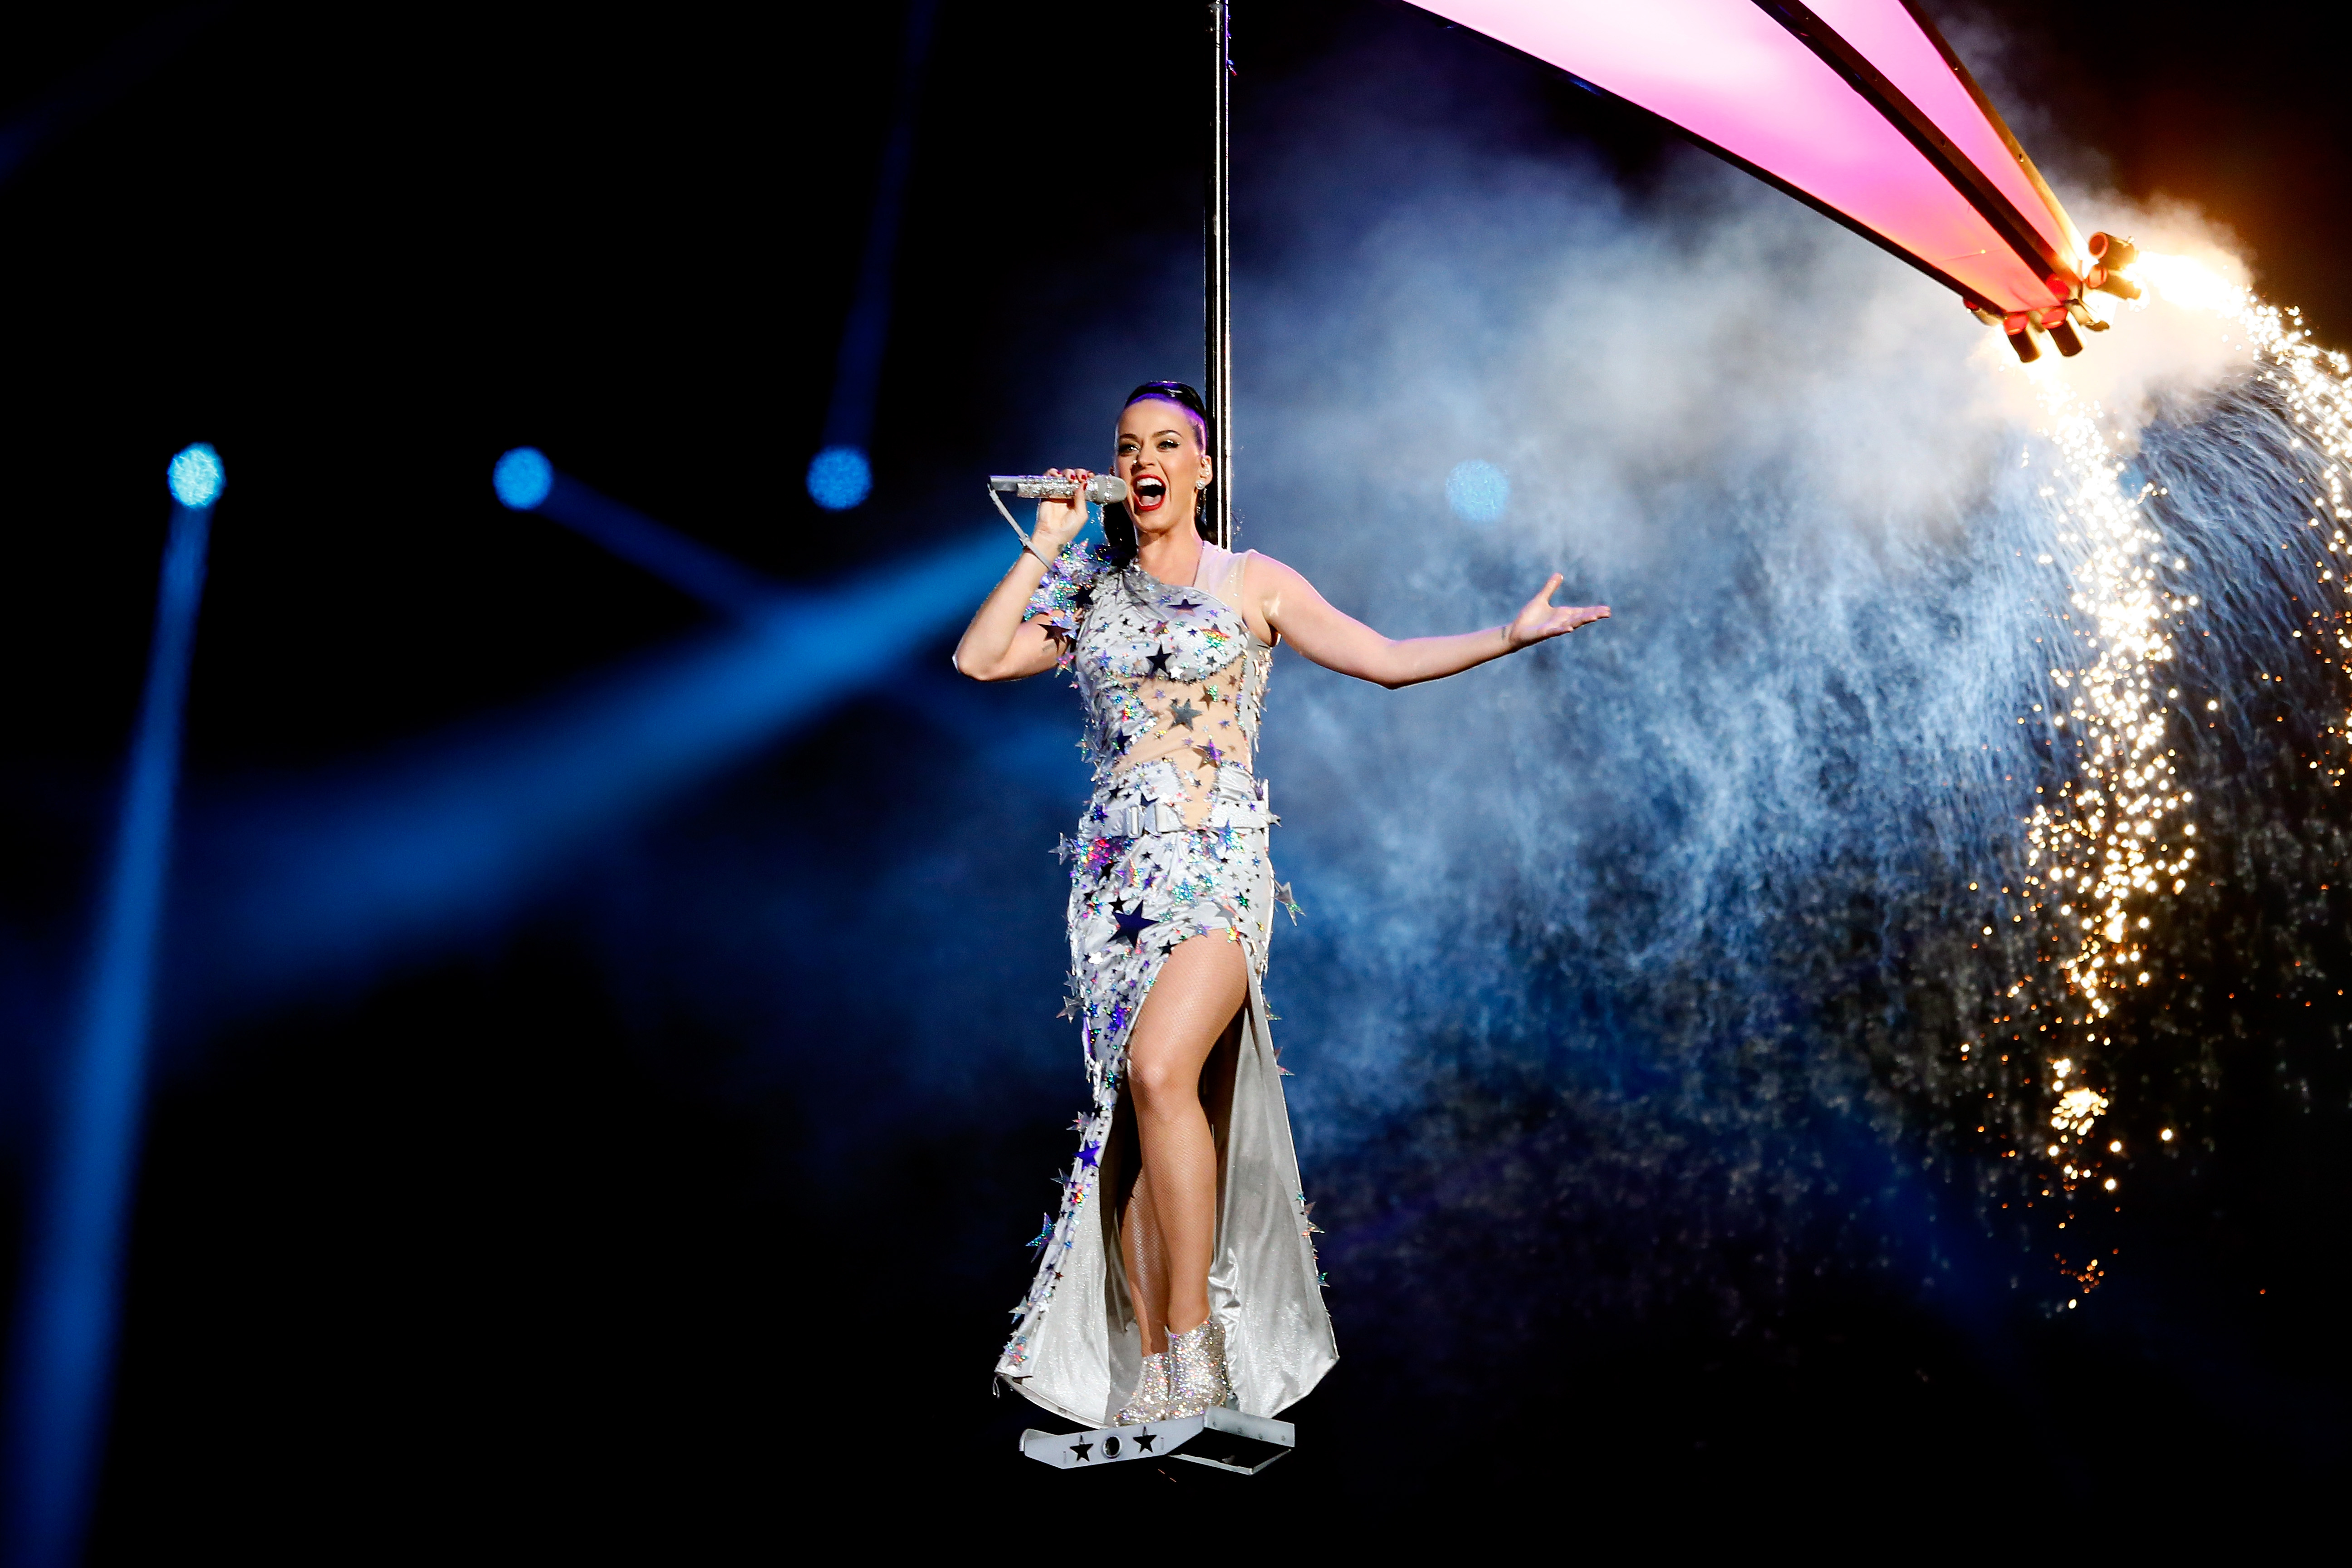 Katy Perry brings fireworks to Super Bowl 2015 - CBS News